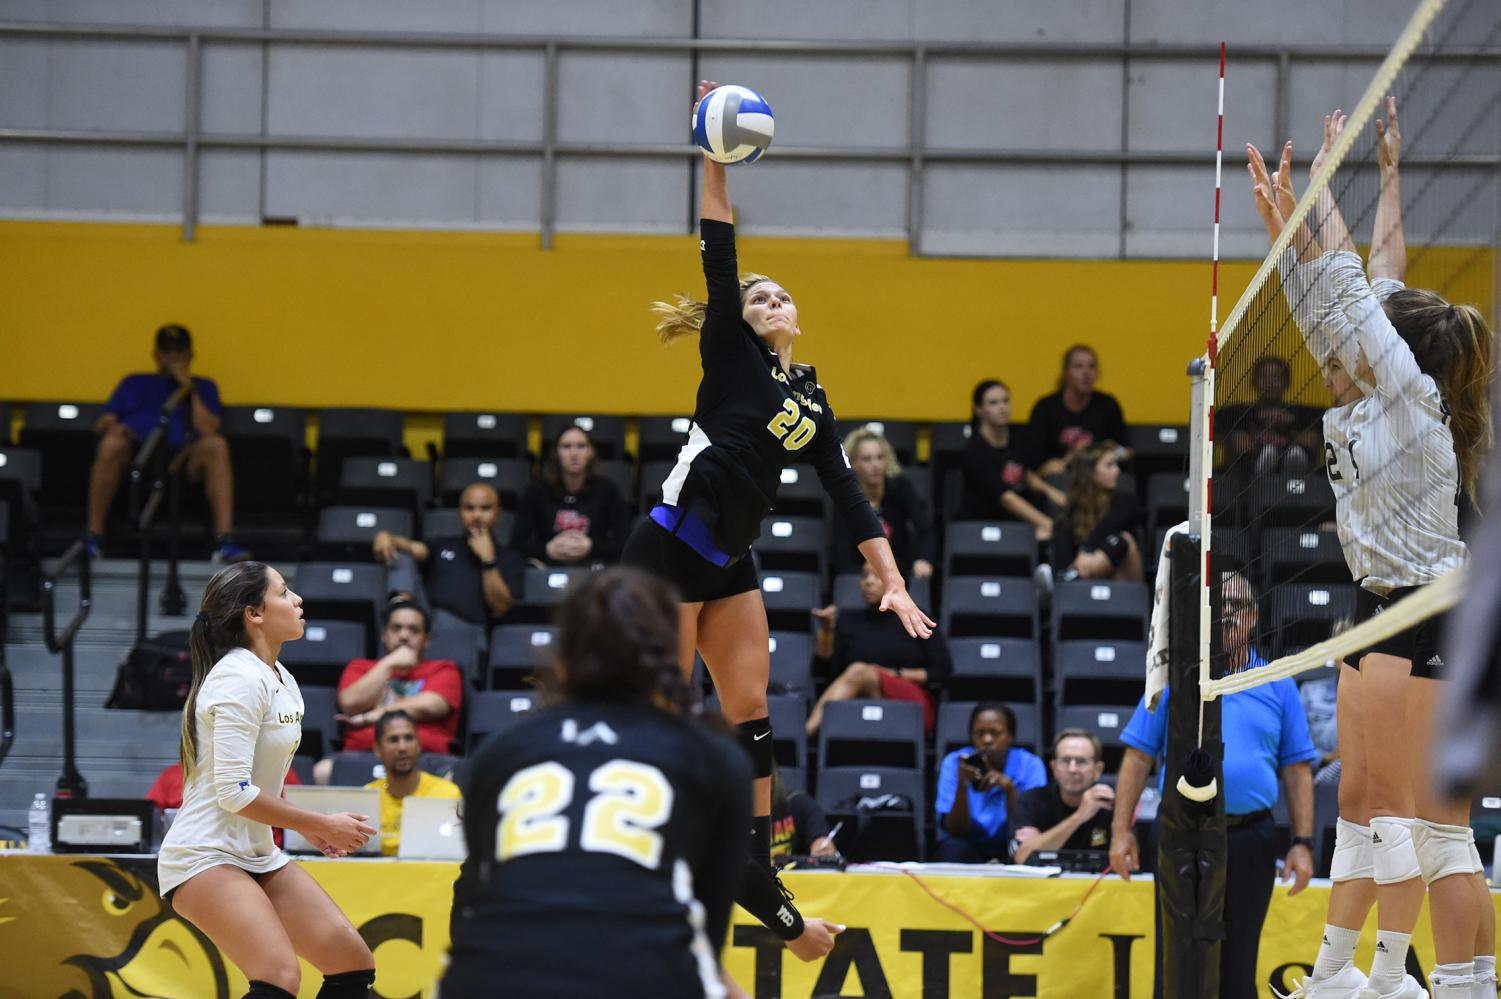 Alejandra Negron (20) hits the volleyball back towards the opposing side of the court. Cal State LA women's volleyball team won against Hawaii Pacific in a home game of 3-0.